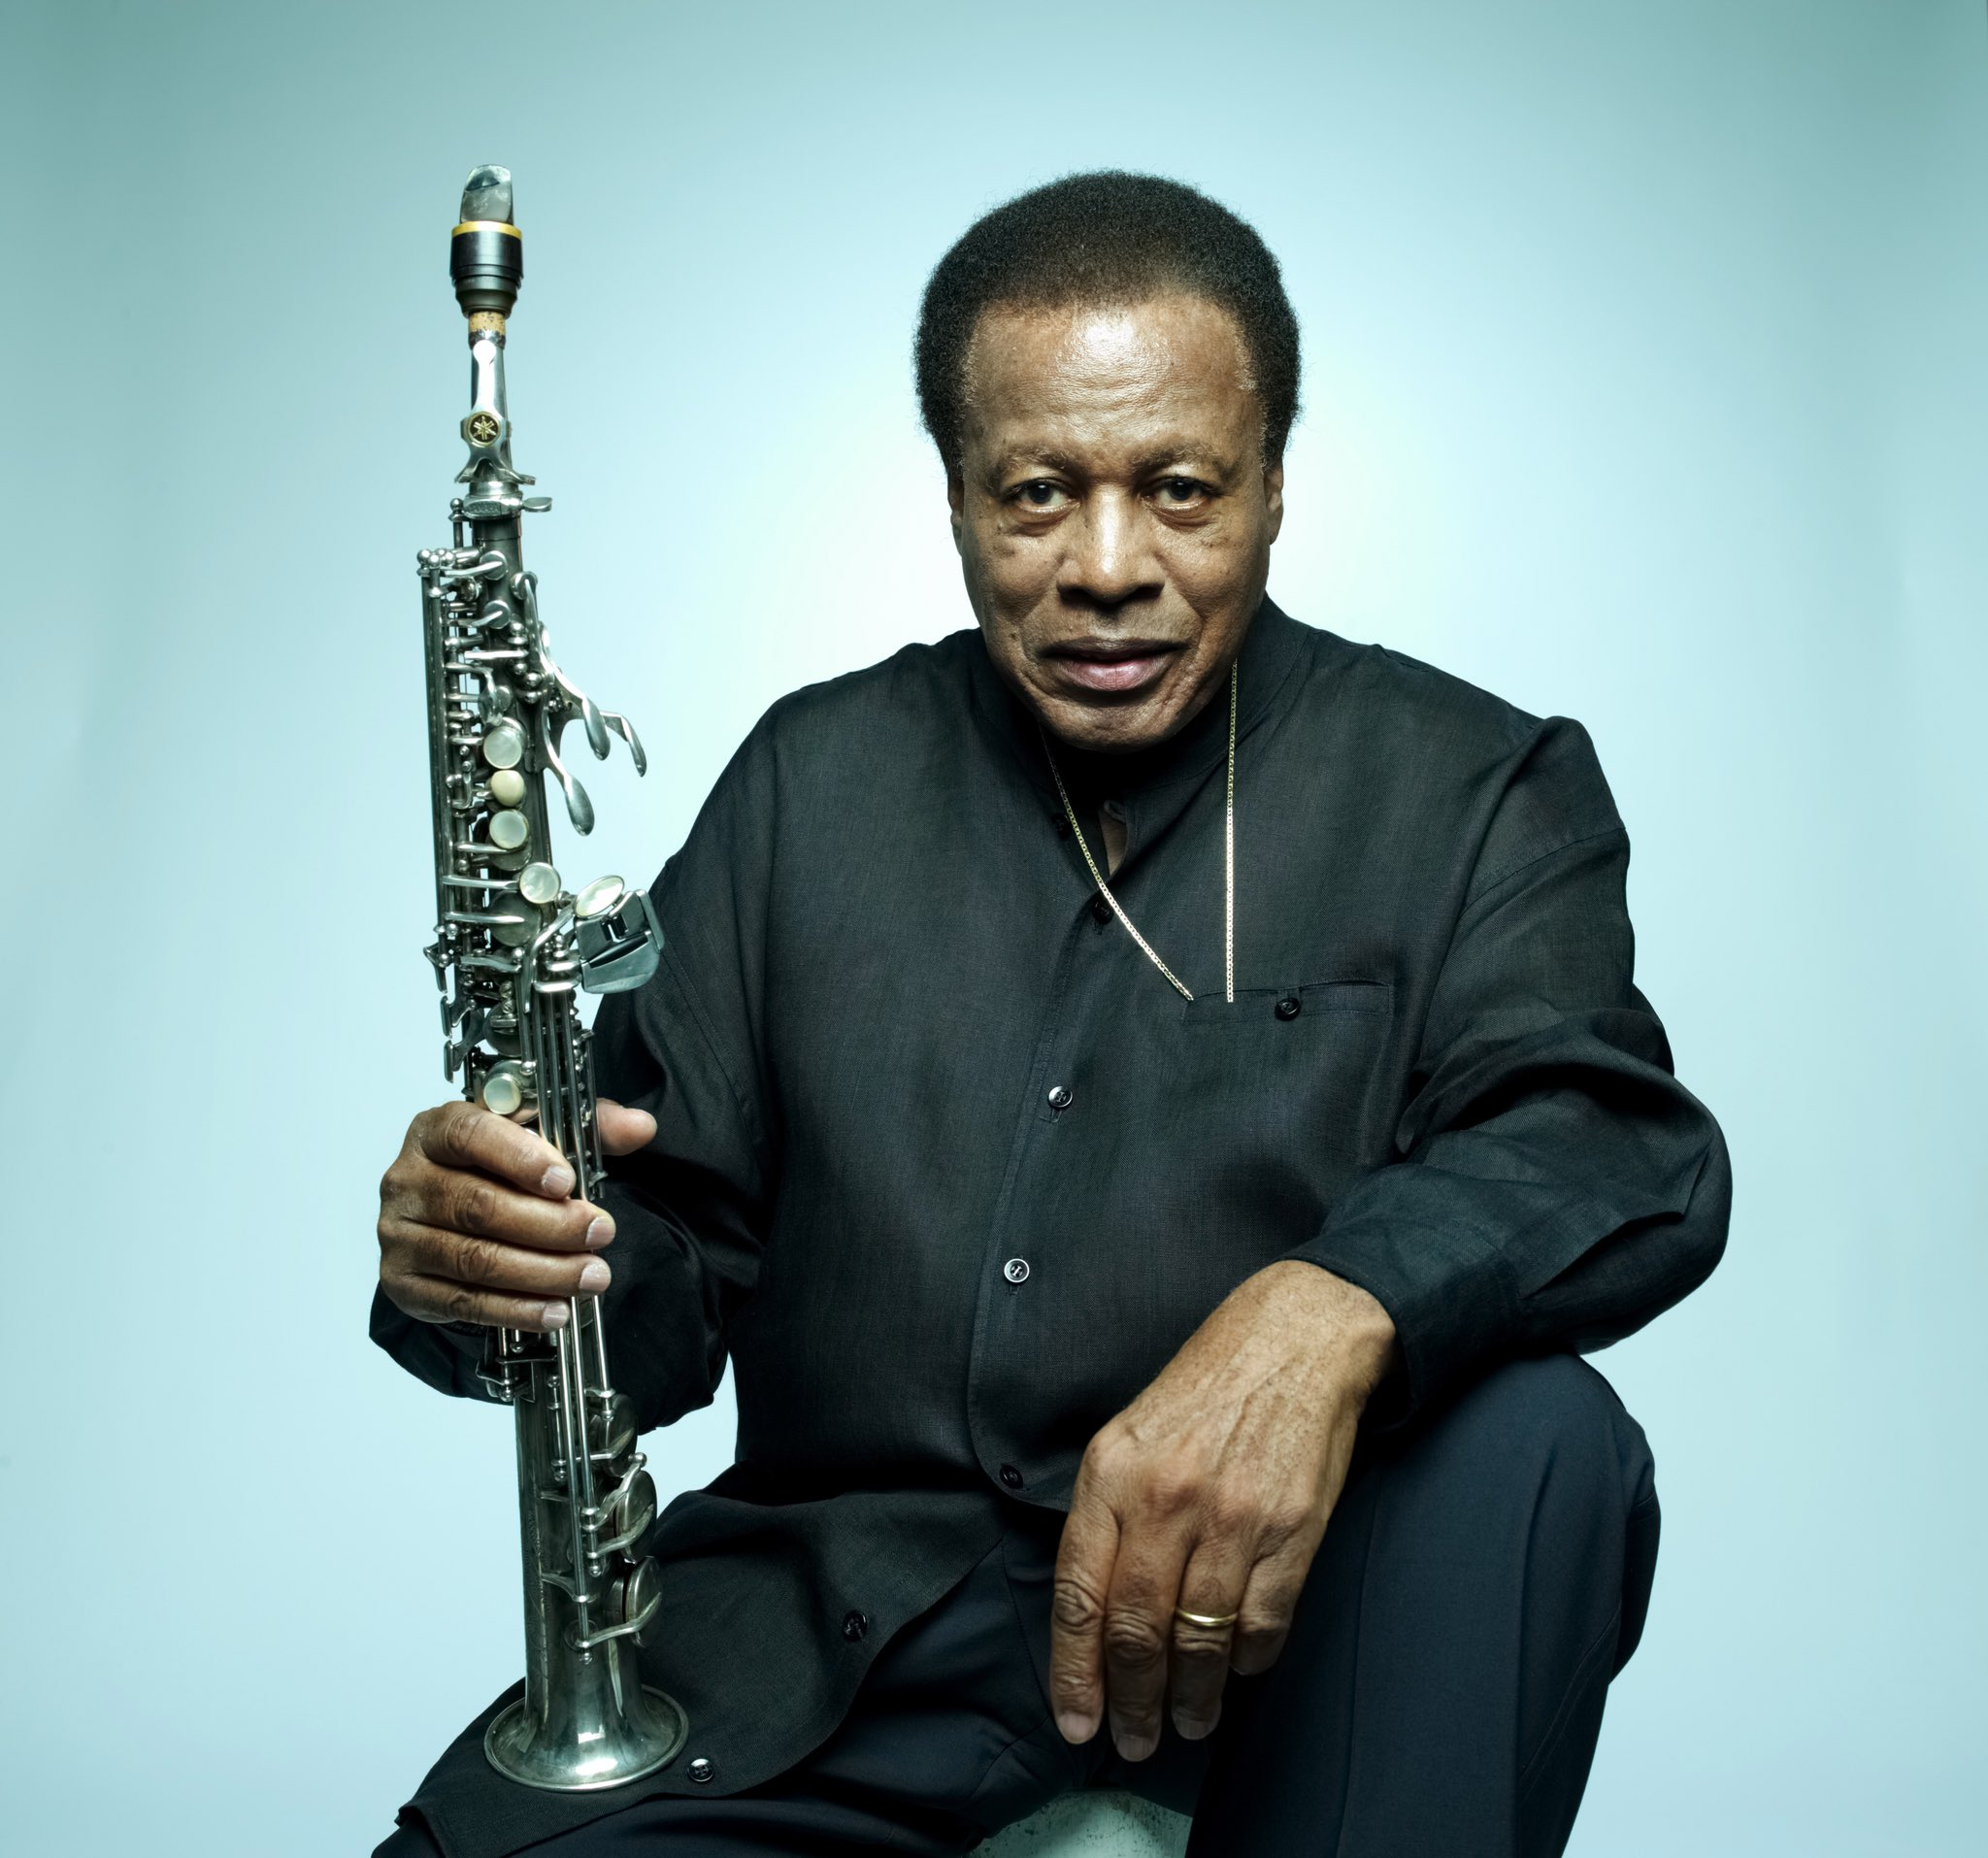 Reloaded twaddle – RT @bluenoterecords: Happy 85th Birthday to the great @Wayne_Shorter!  Celebrate...